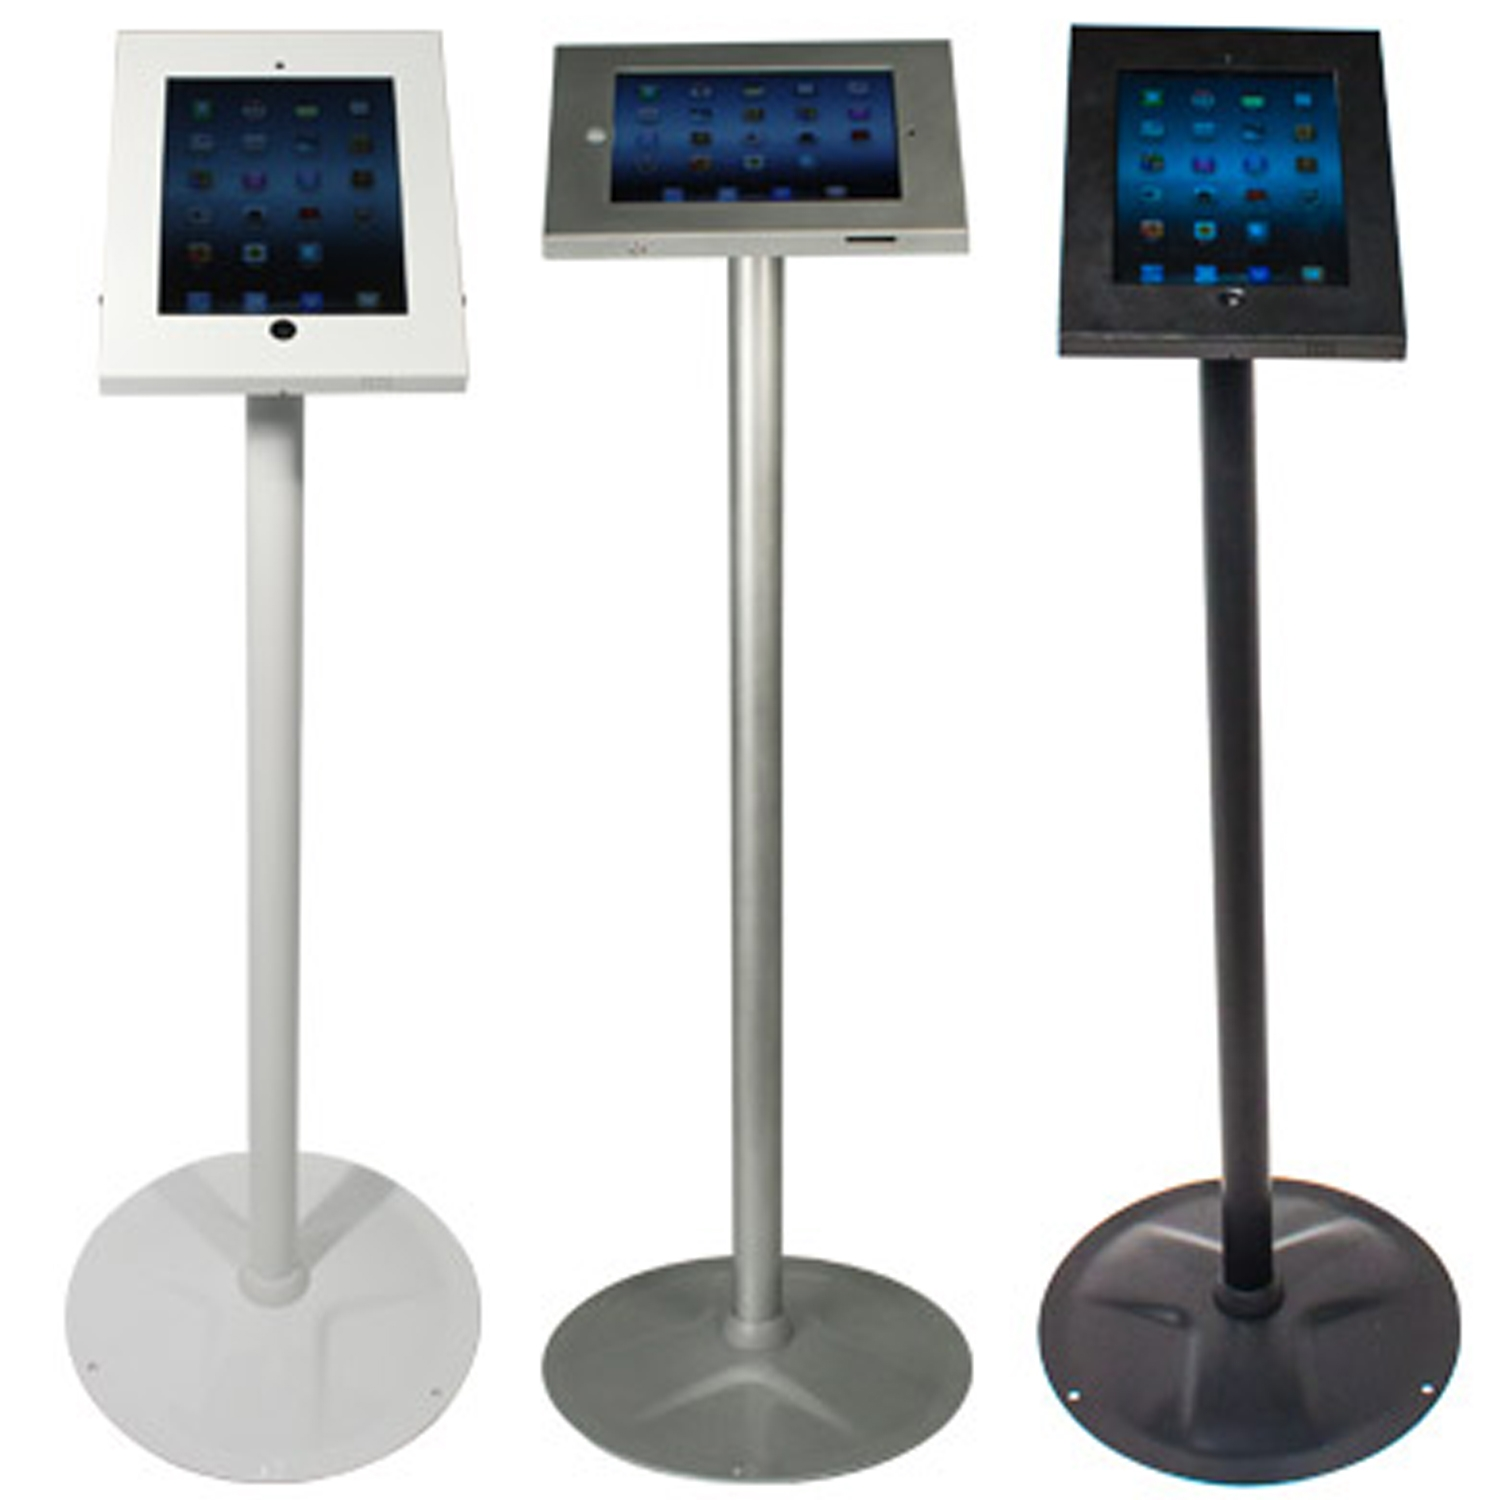 Freestanding iPad Holders